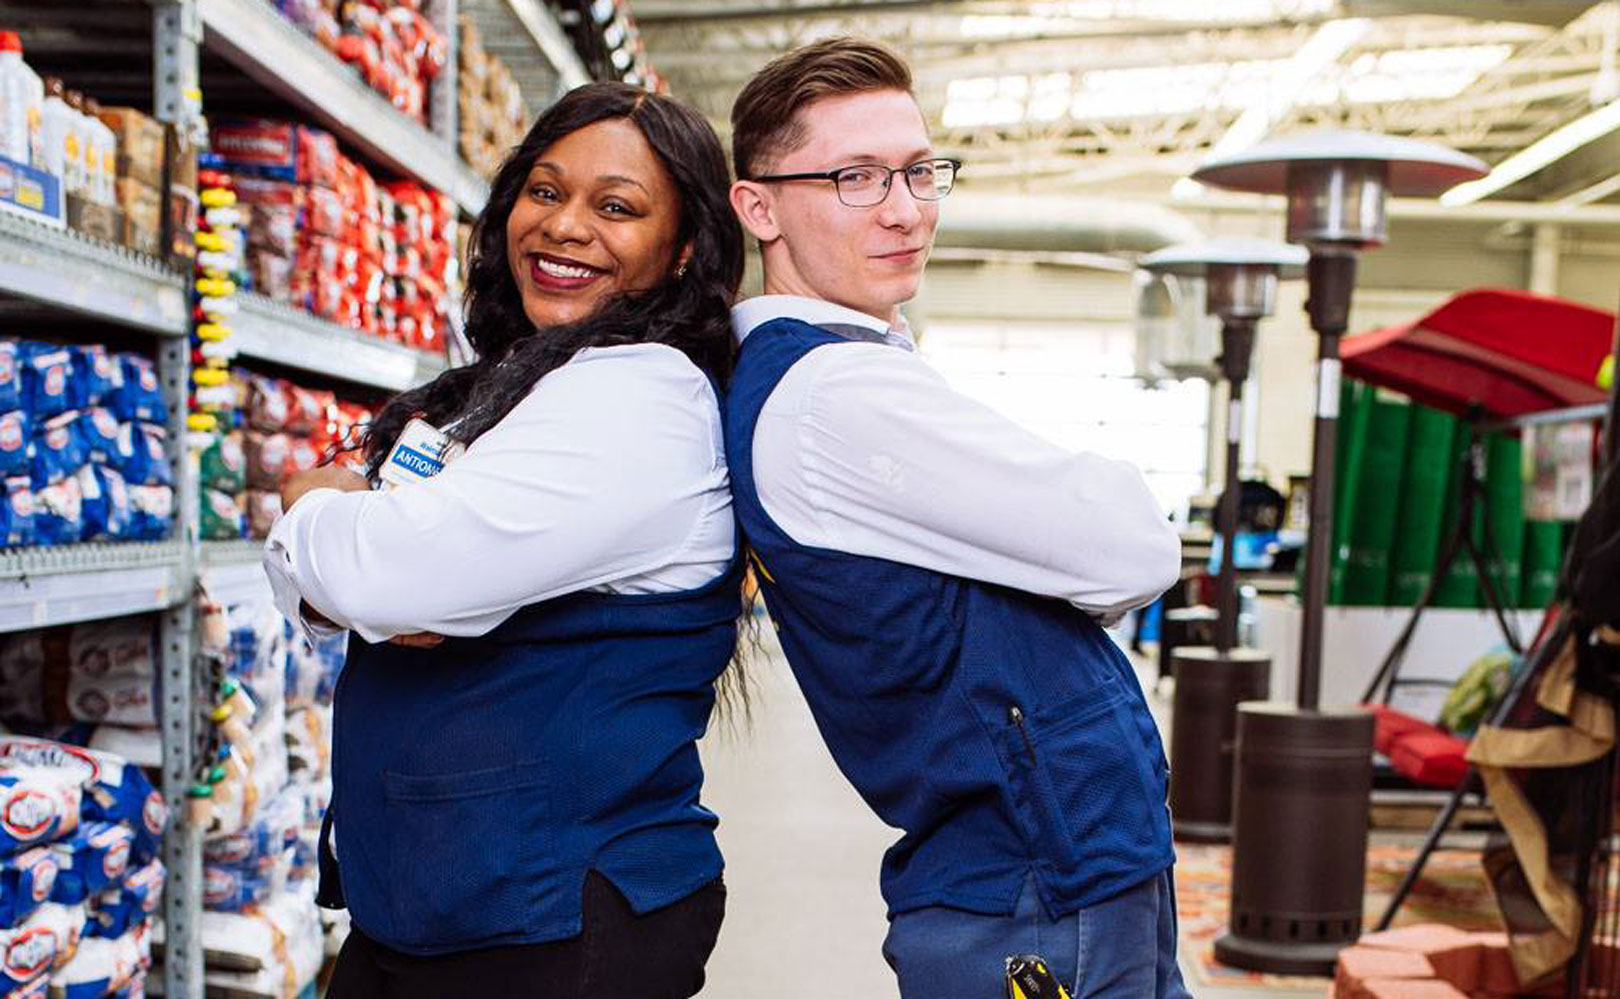 Walmart's Employees Can Earn a Degree for $1 a Day—Here's